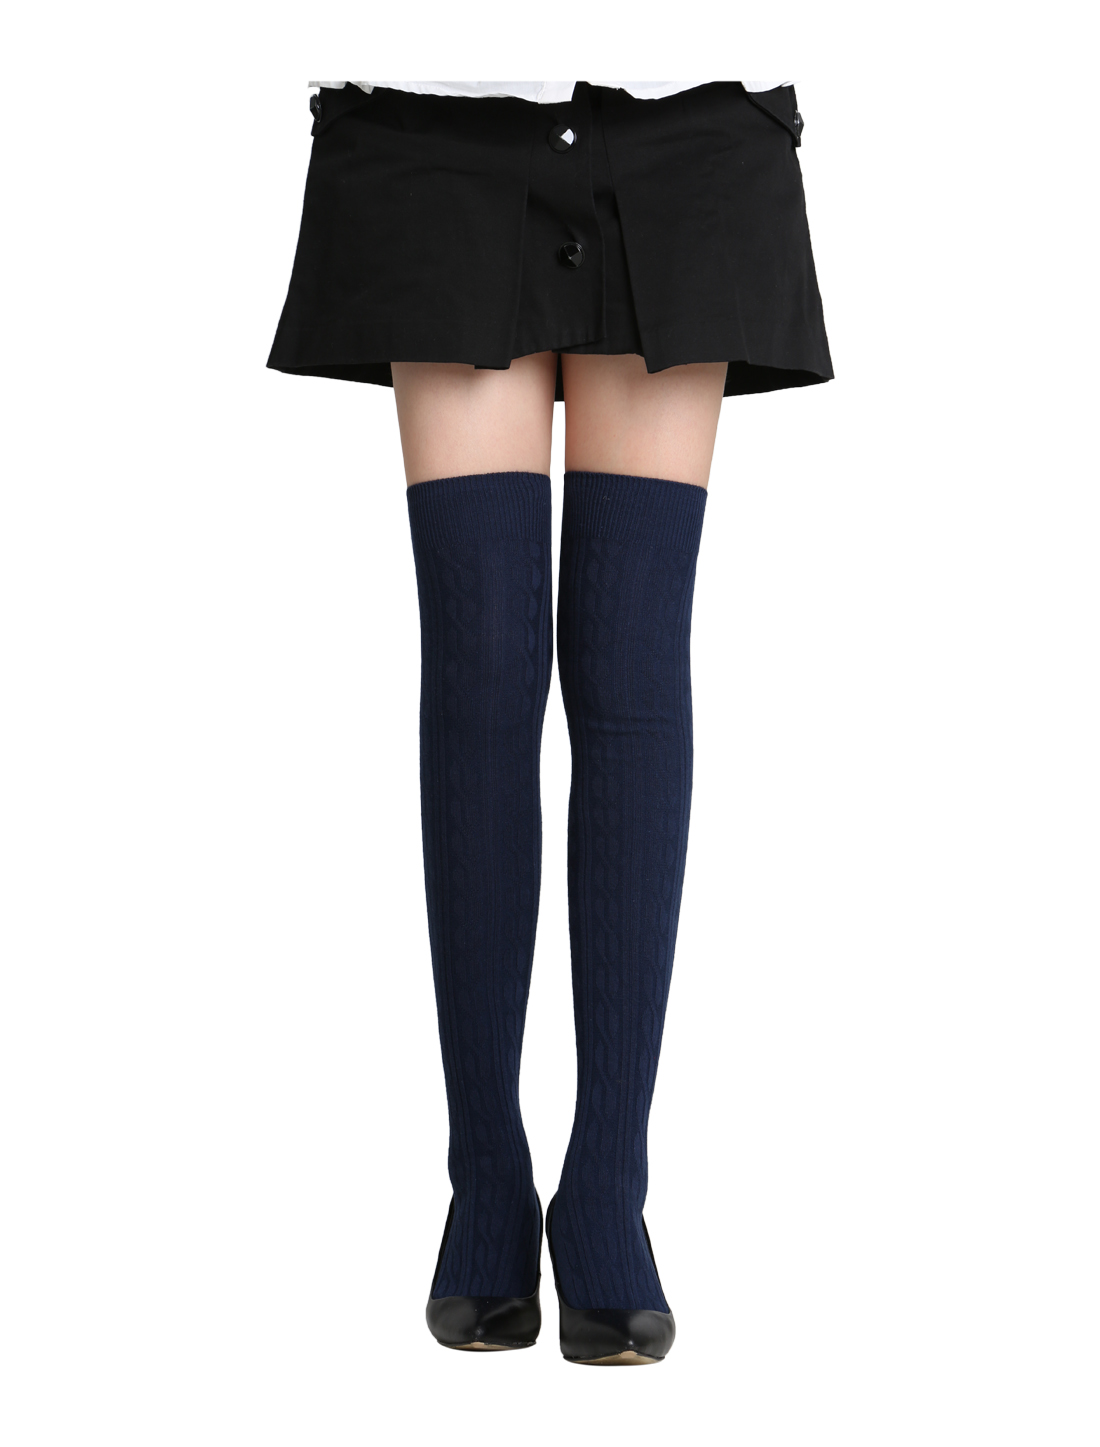 Ladies Over Knee Stretchy Skinny Fit Ribs Knitted Stockings Blue 9-11